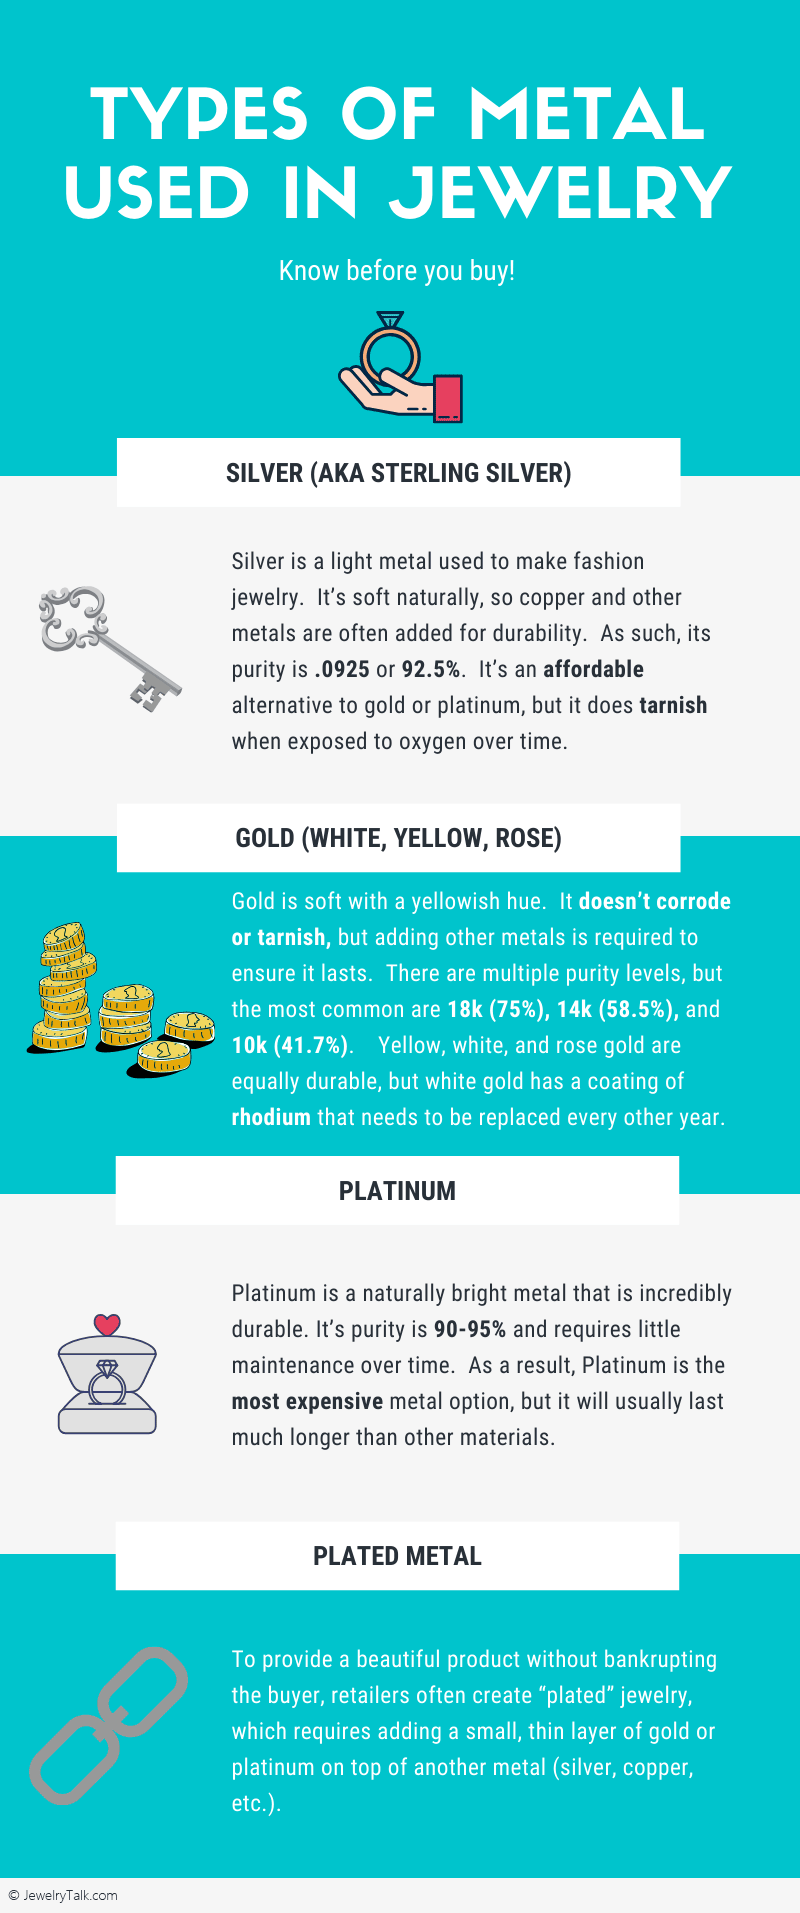 [Infographic] Types of Metal Used in Customizing Jewelry